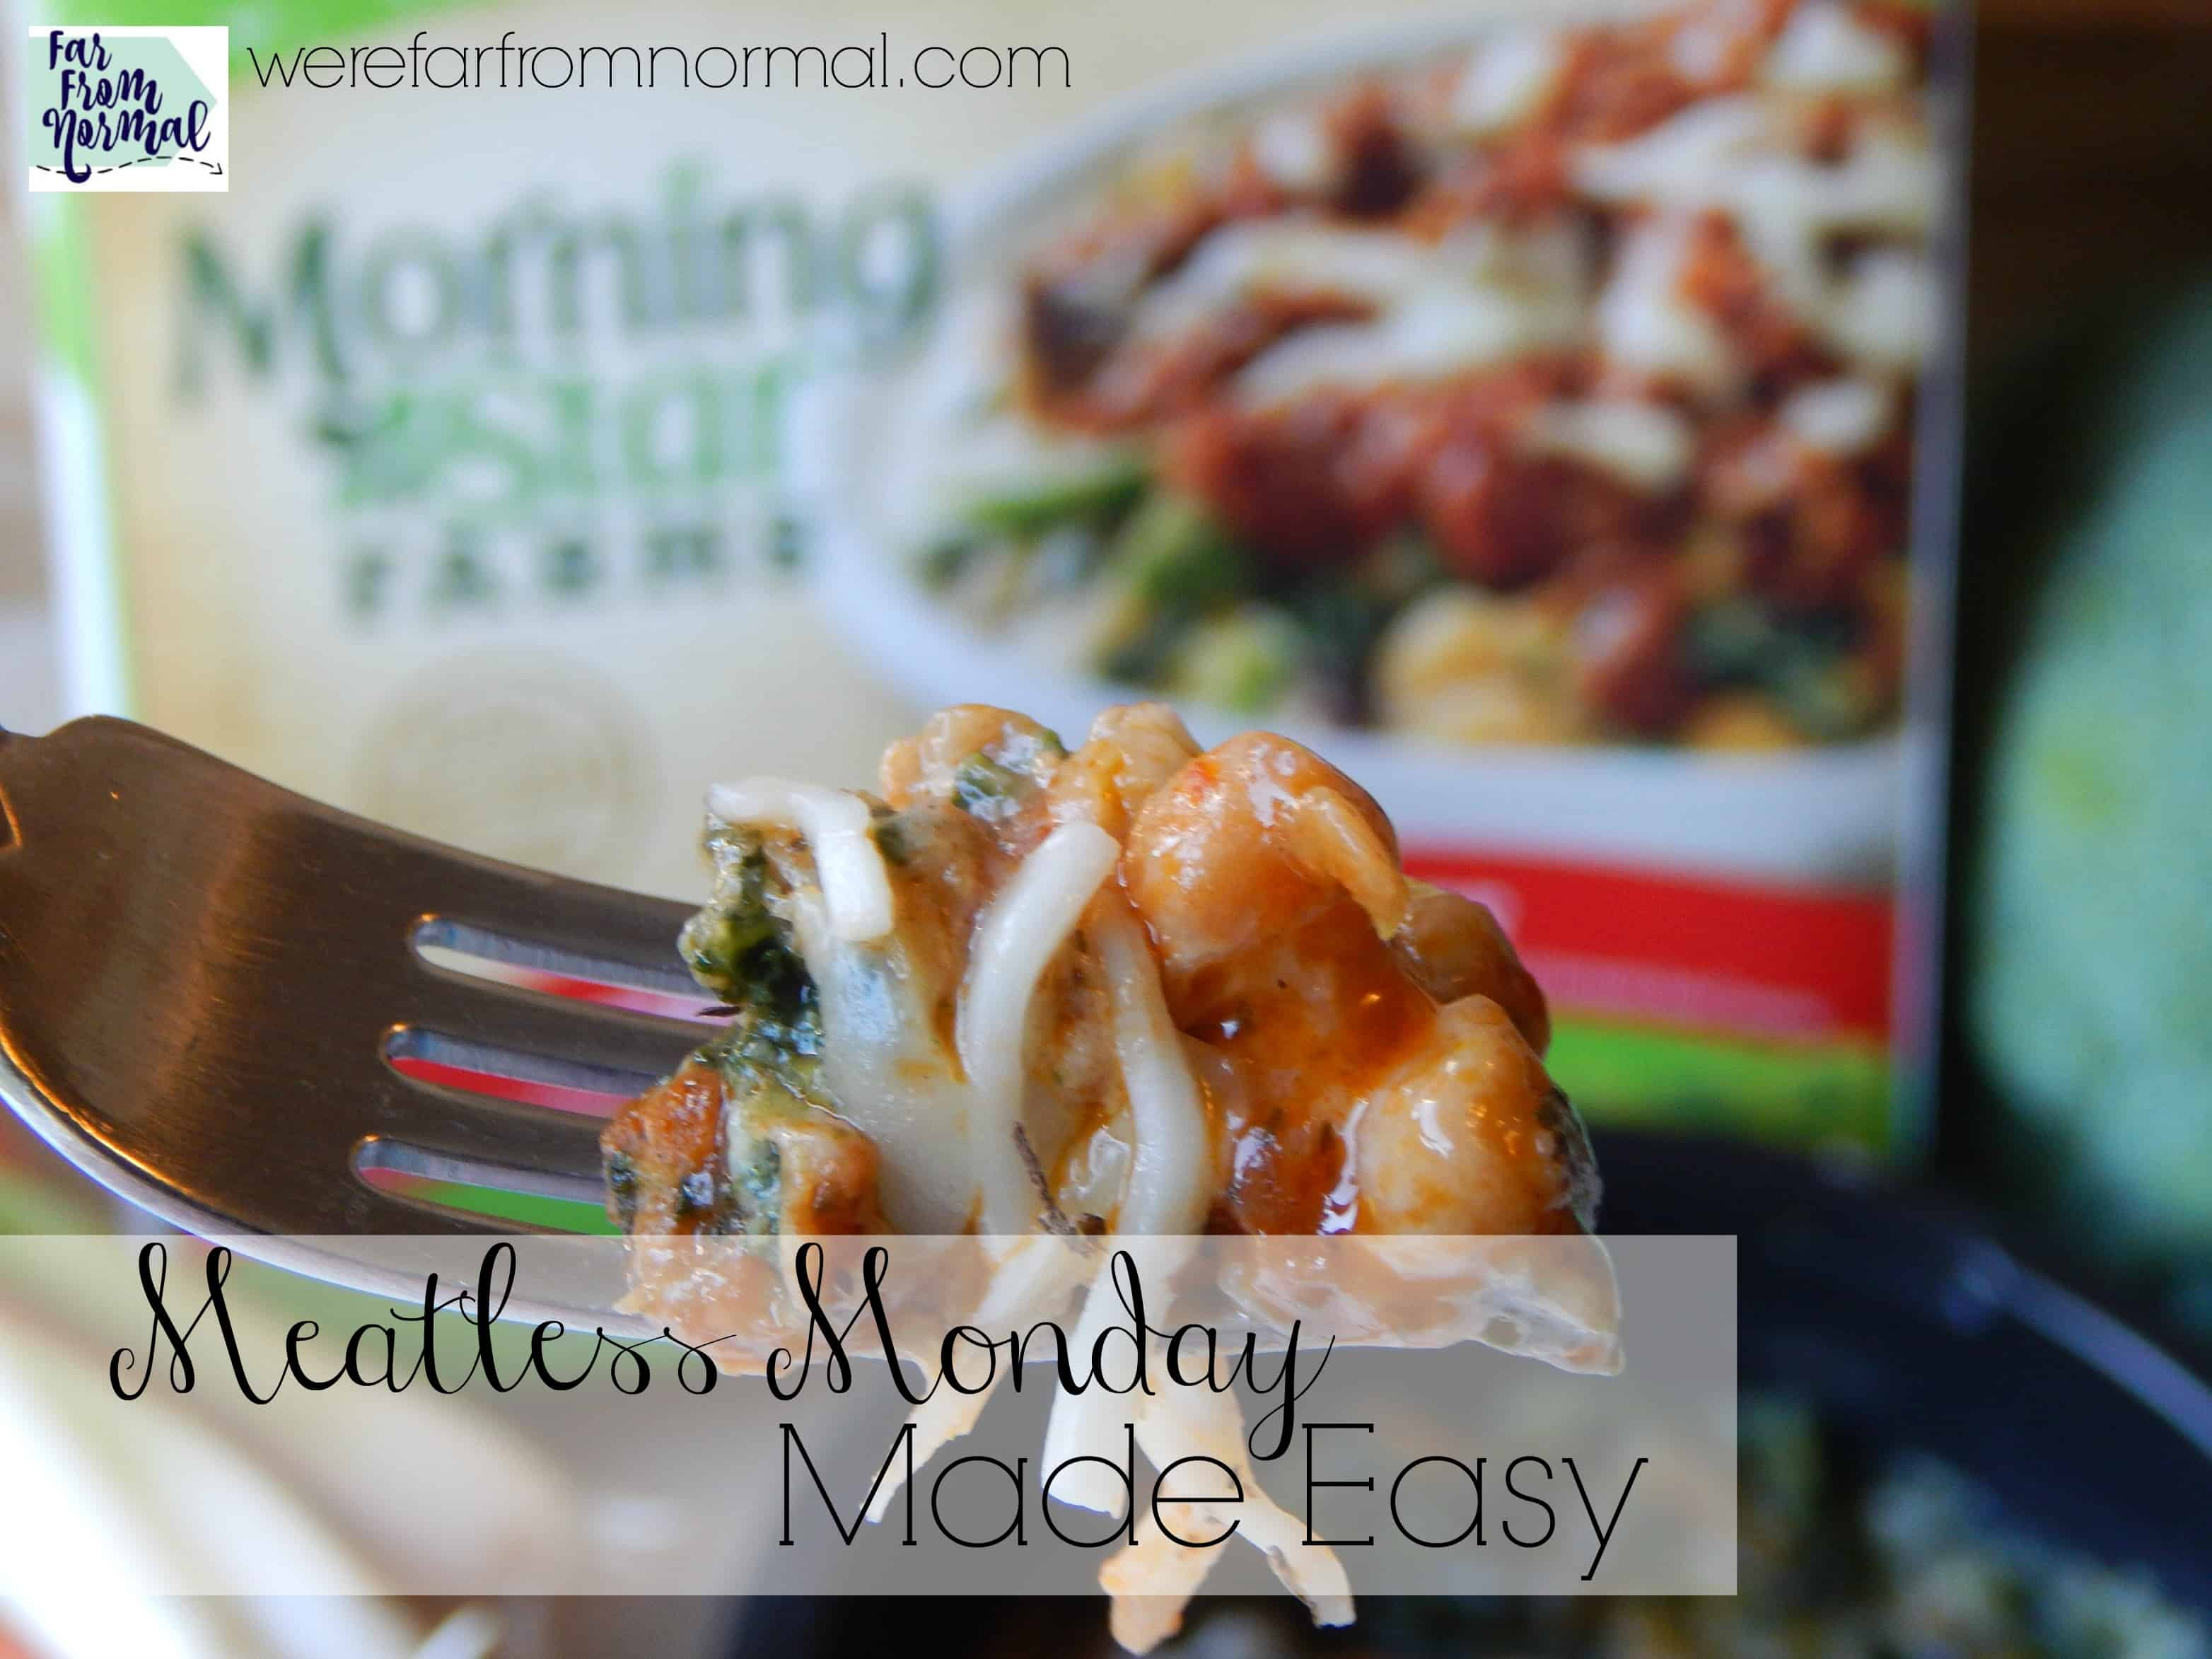 Meatless Monday Made Easy